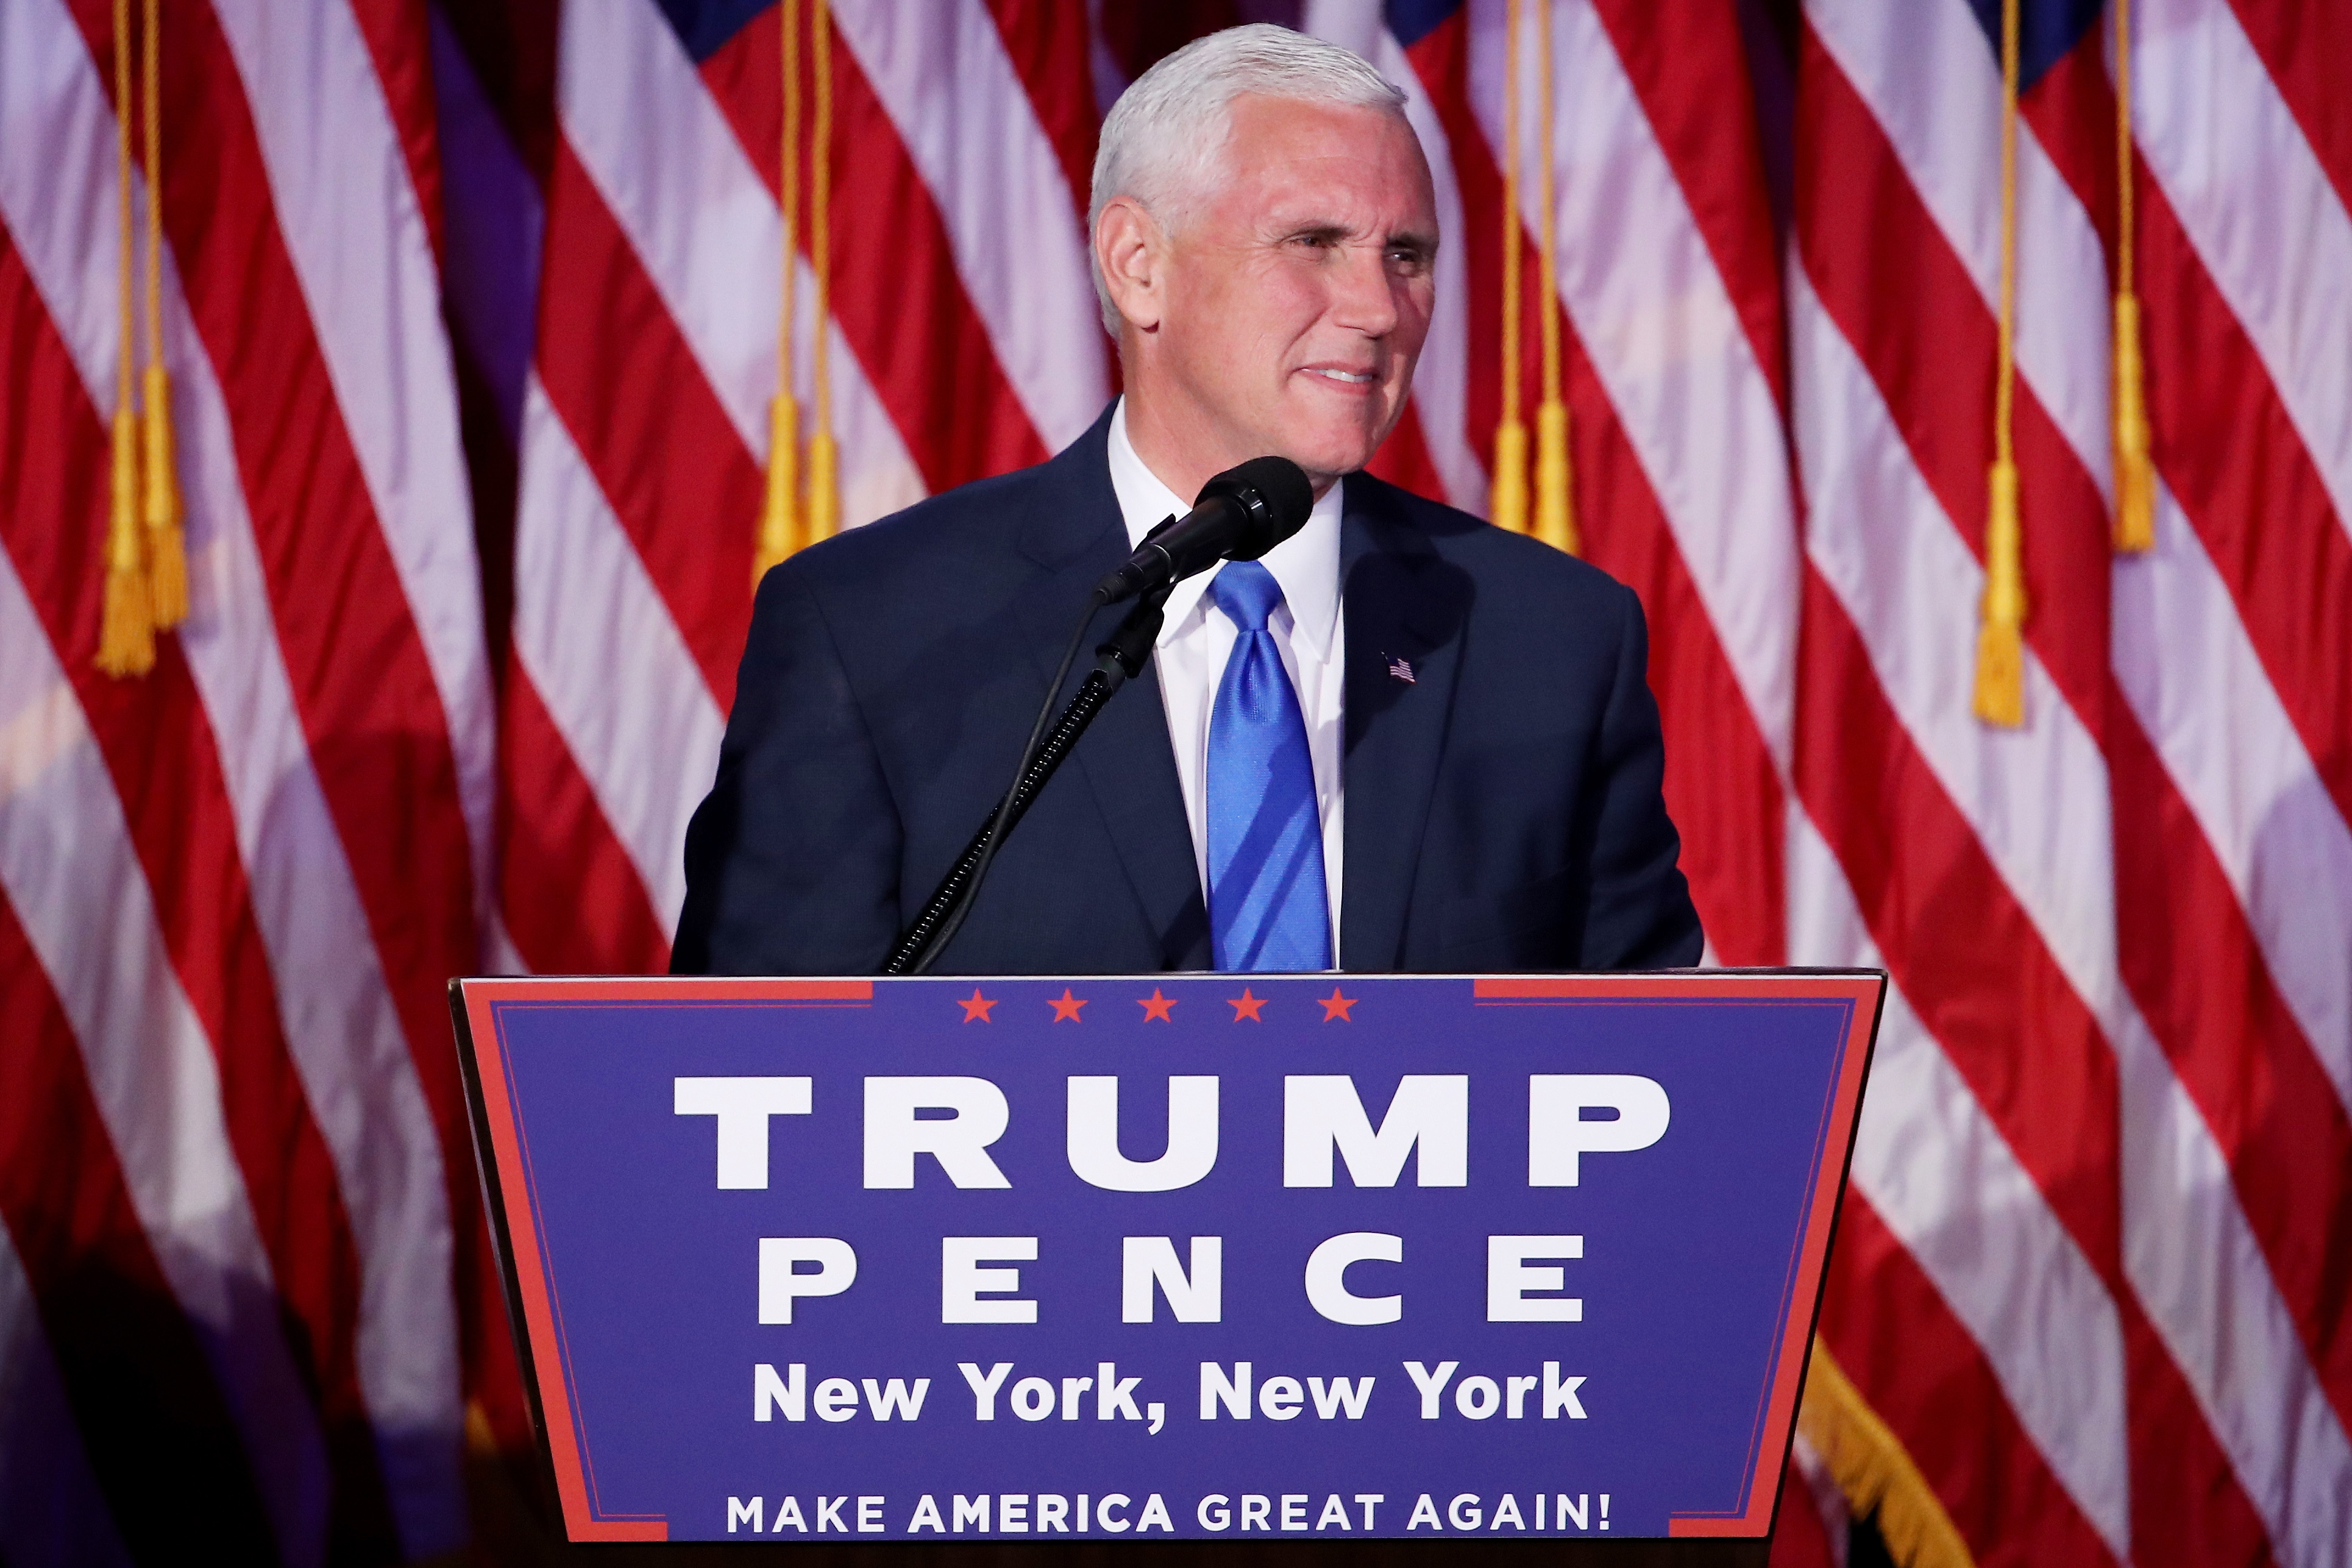 Vice president-elect Mike Pence speaks to supporters on November 9, 2016 in New York City.